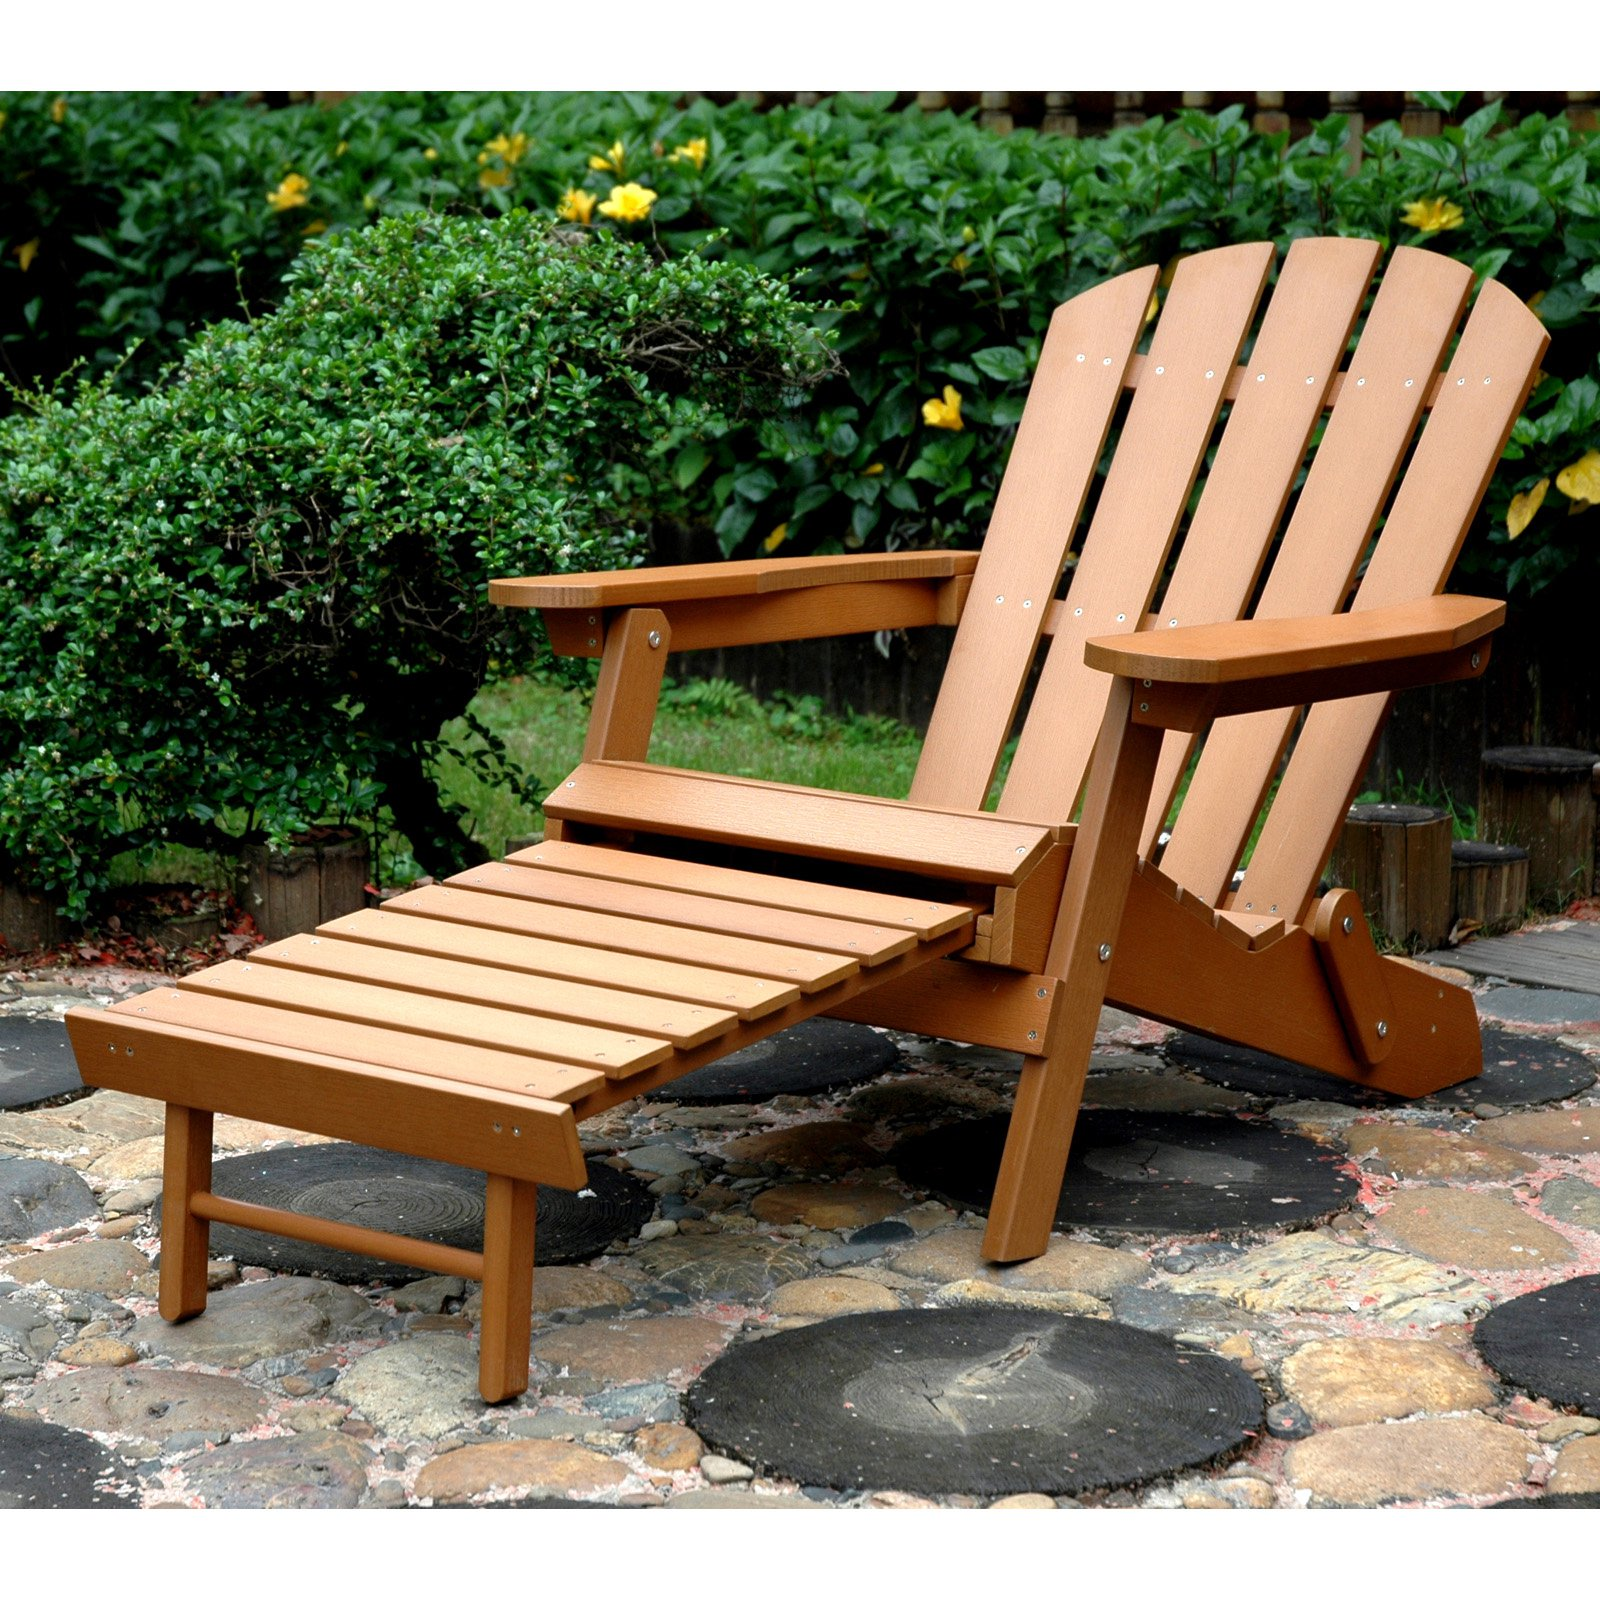 Merry Products Plastic Wood Folding Adirondack Chair With Ottoman